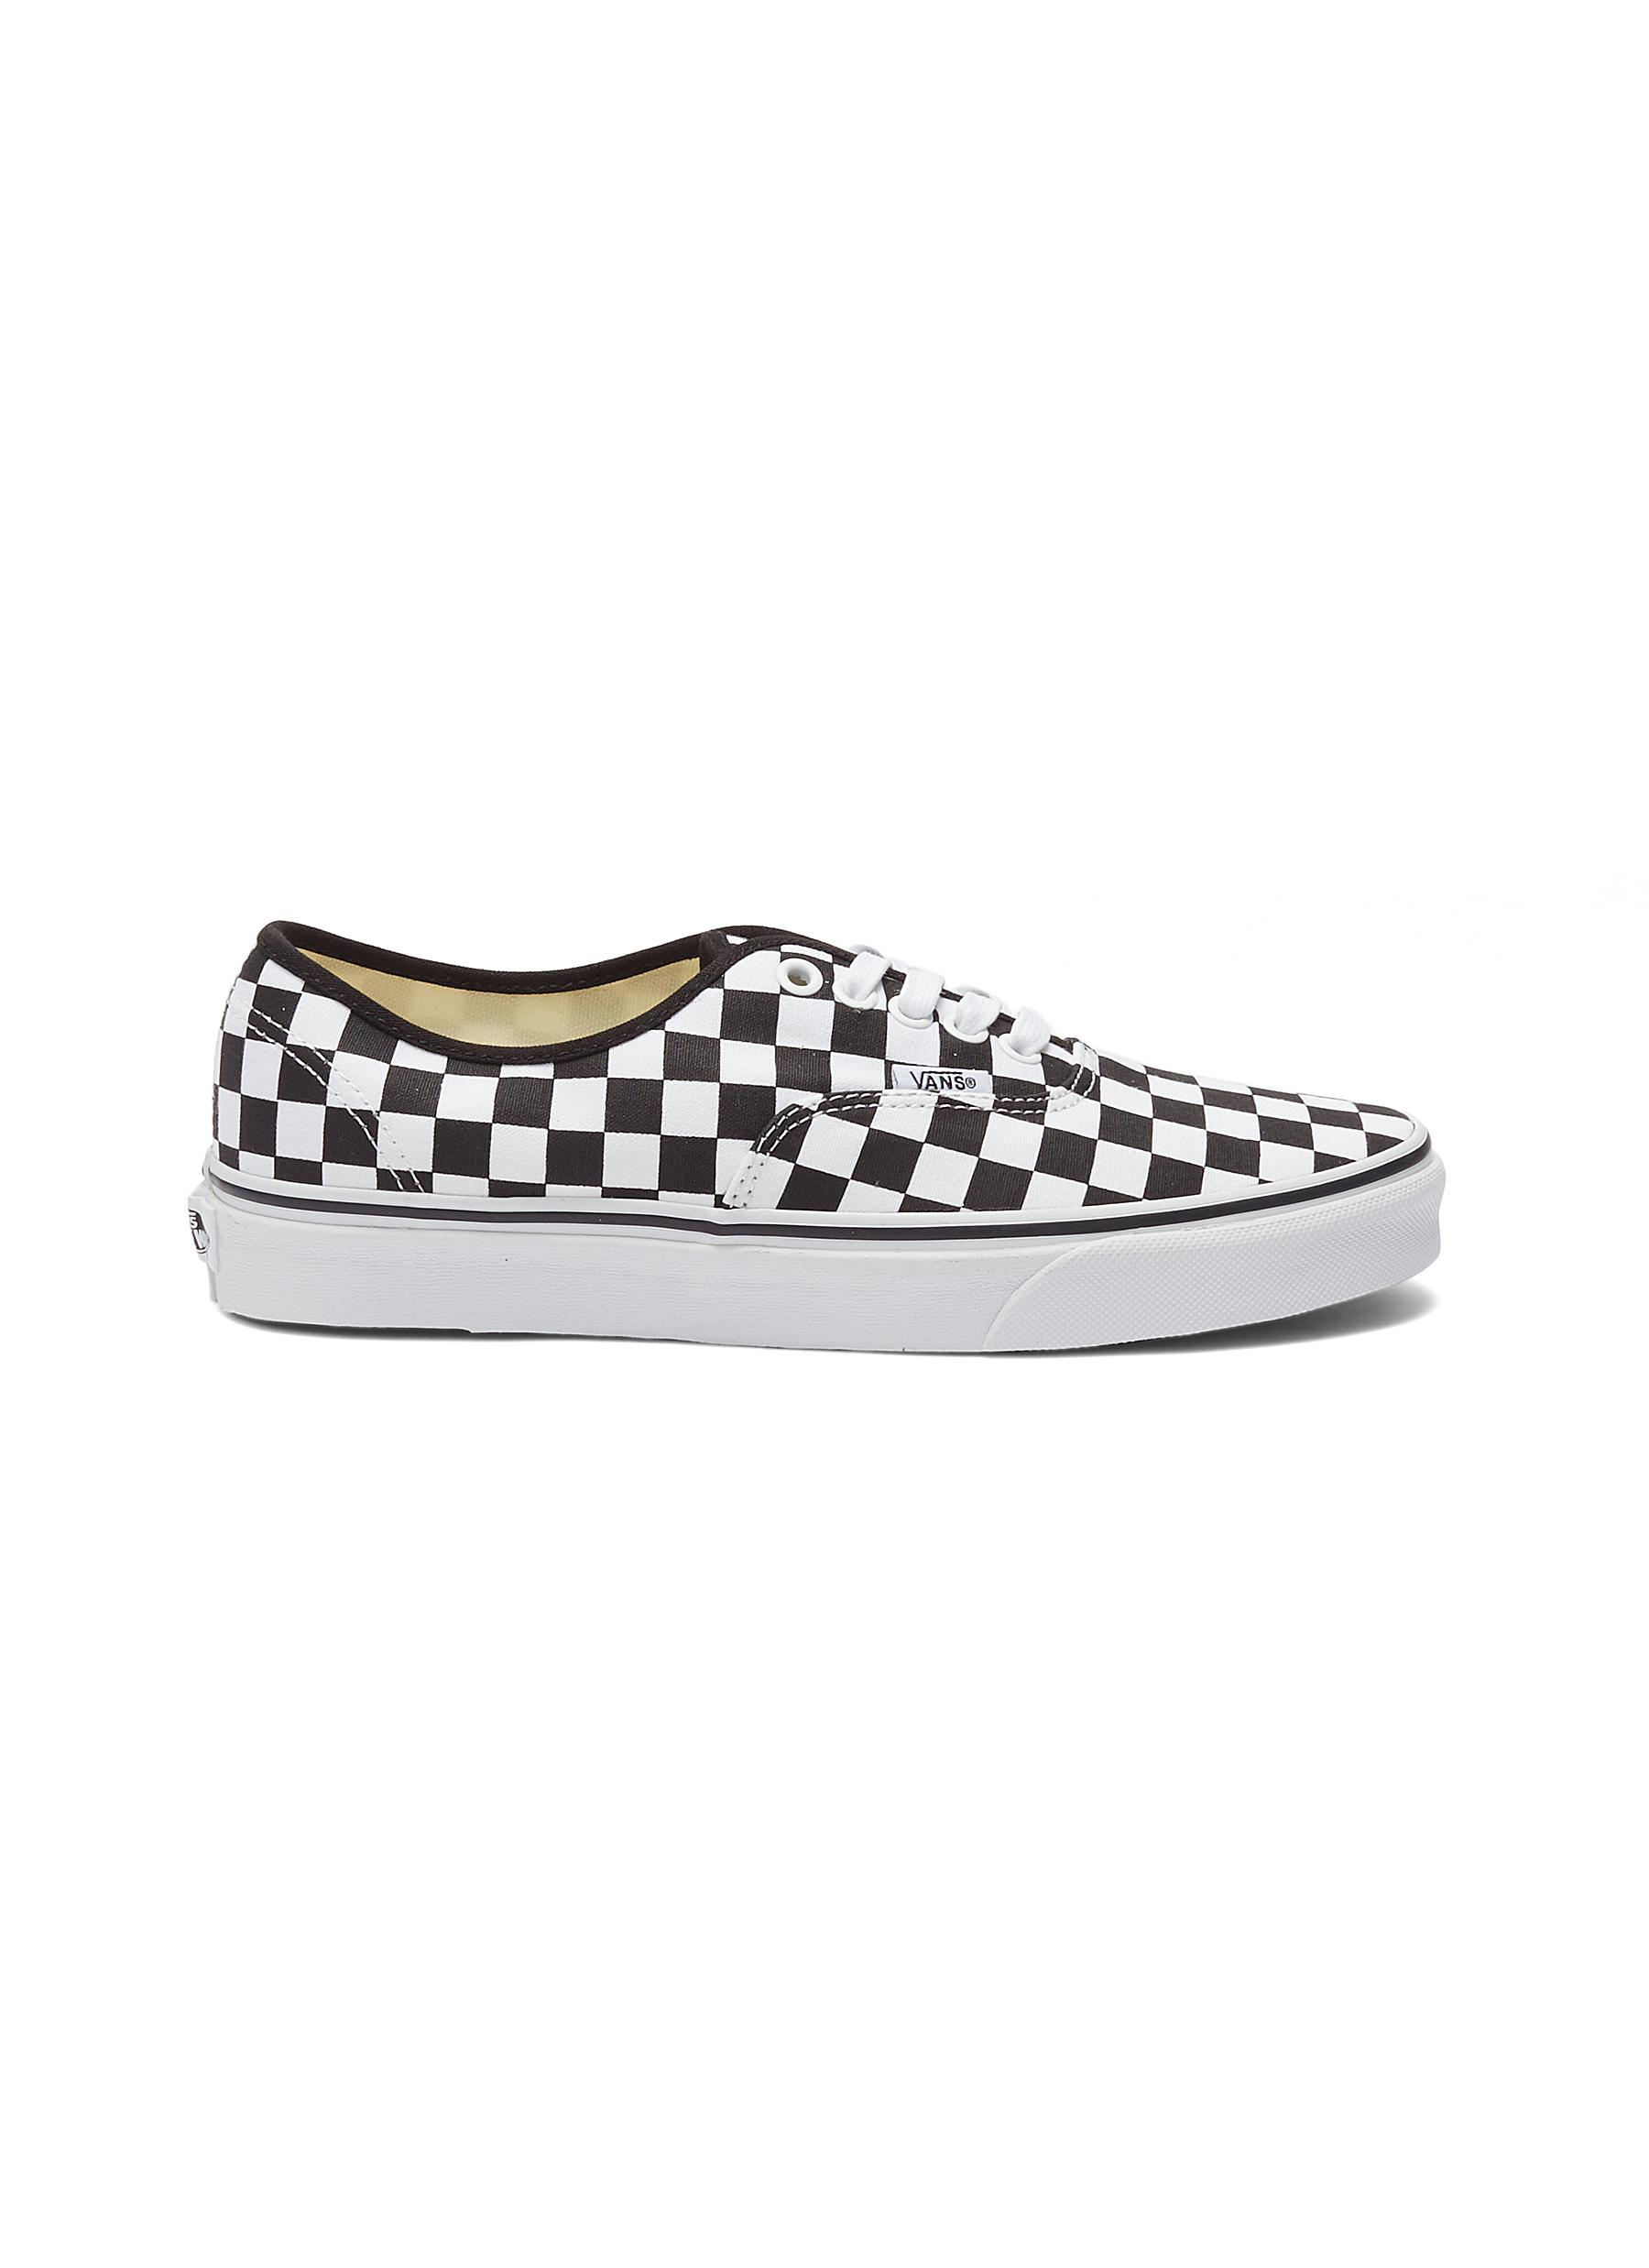 72cbfecc541 Main View - Click To Enlarge - Vans -  Authentic  checkerboard canvas  sneakers